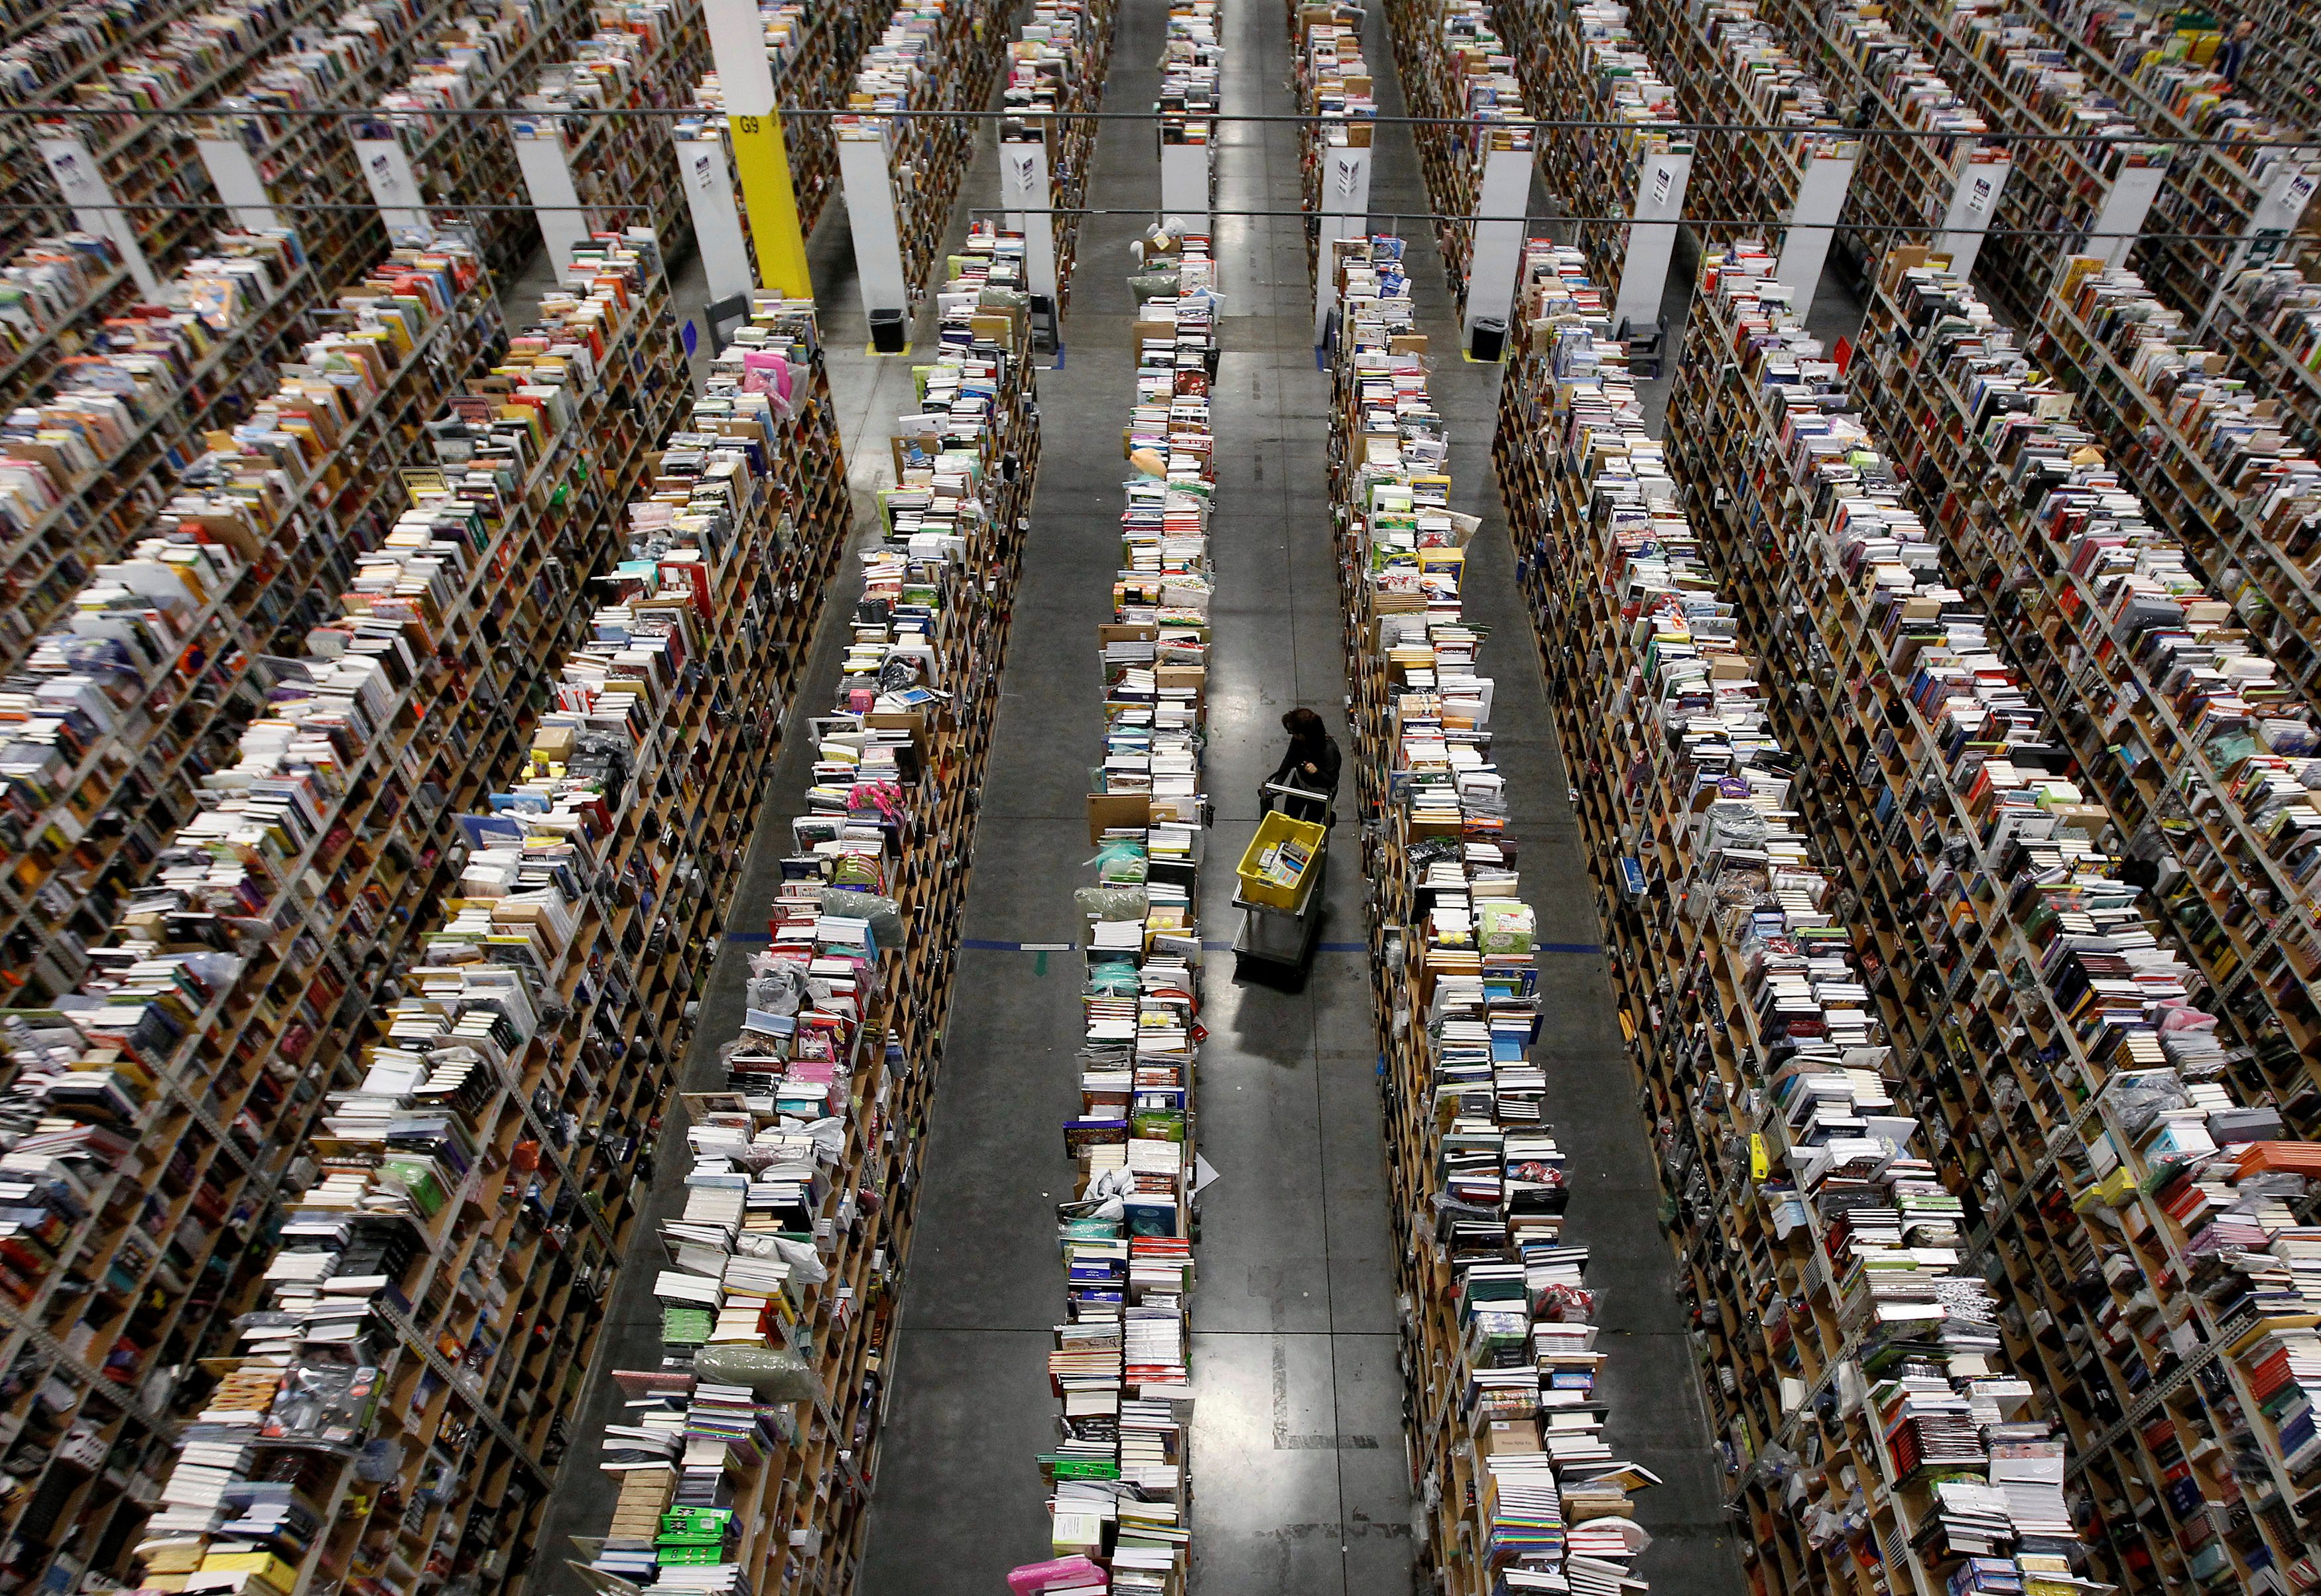 A worker gathers items for delivery from the warehouse floor at Amazon's distribution center in Phoenix, Arizona November 22, 2013.  REUTERS/Ralph D. Freso/File Photo